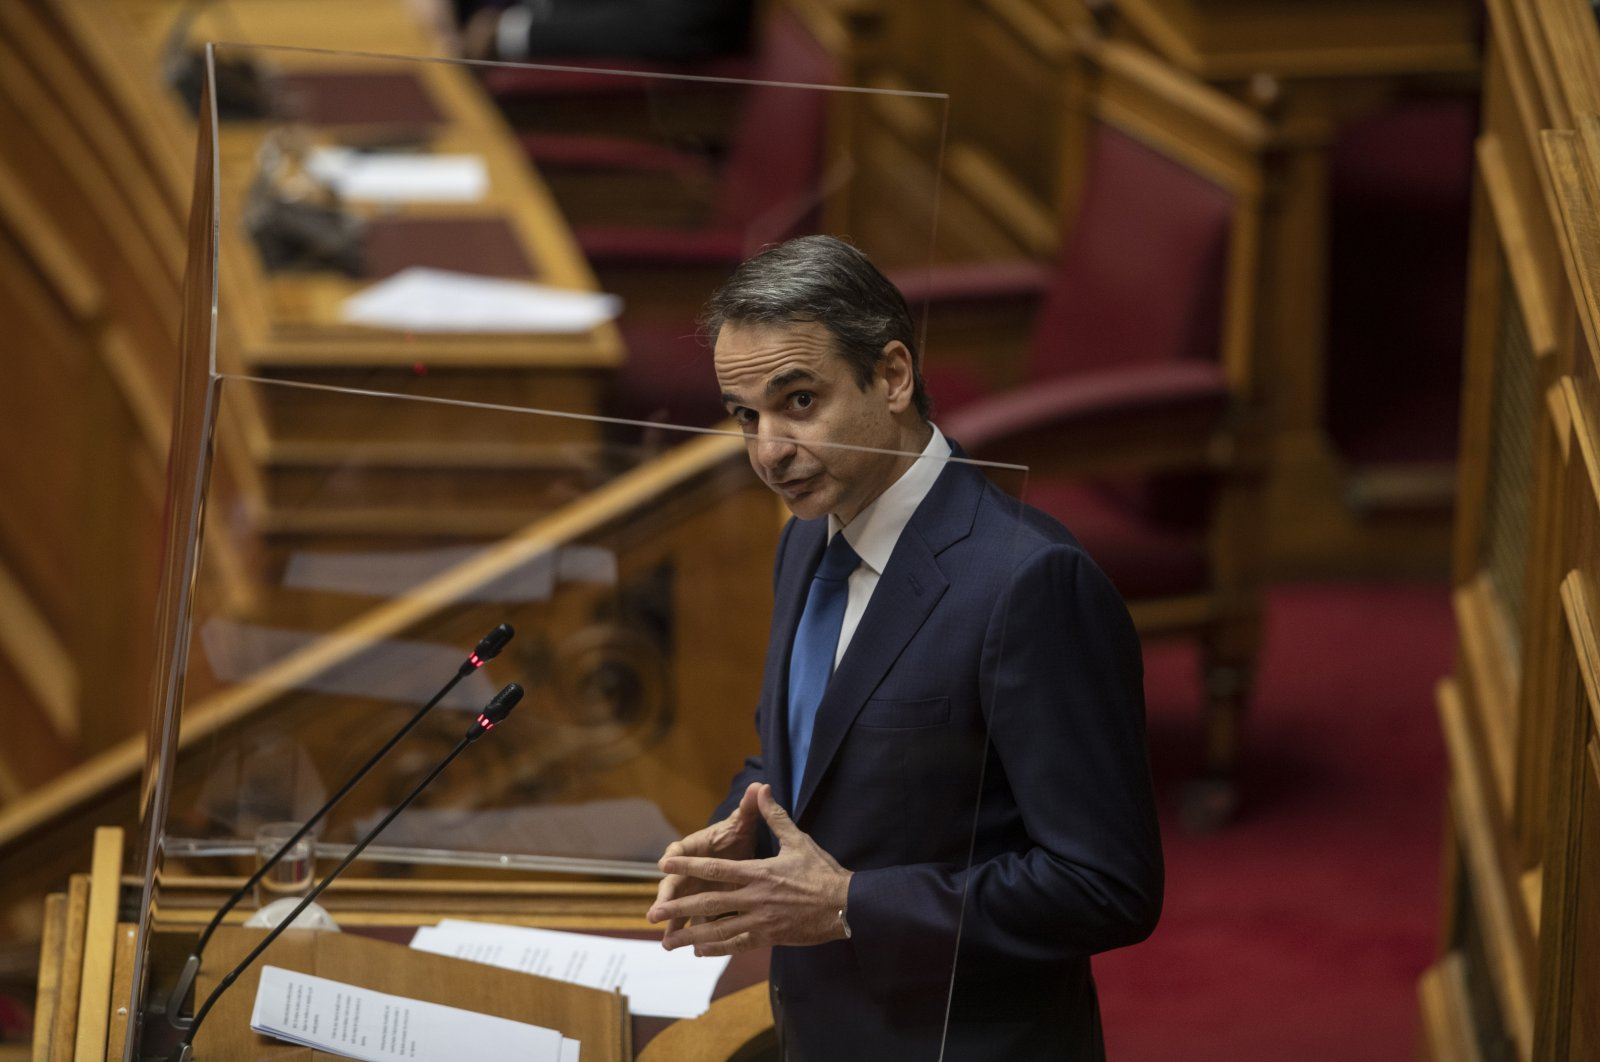 Greek Prime Minister Kyriakos Mitsotakis speaks during a parliamentary session in Athens, Greece, Feb. 25, 2021. (AP Photo)